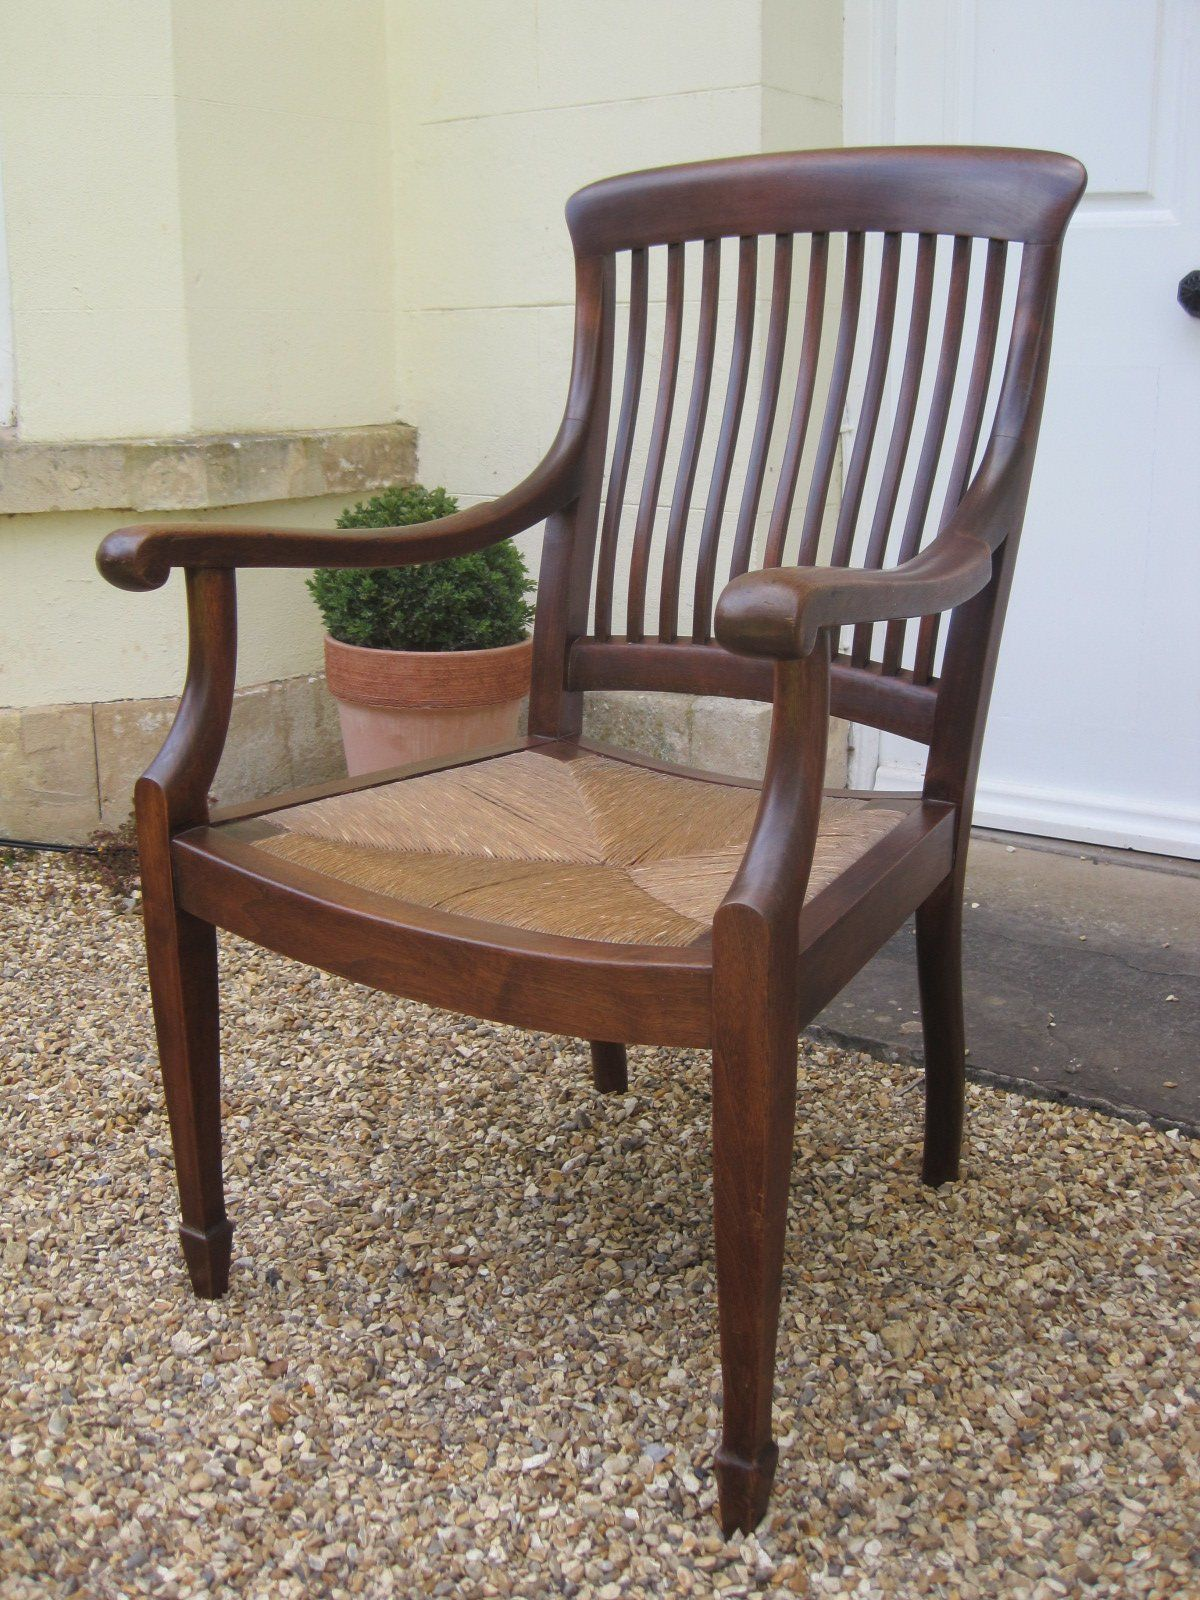 Handsome Arts And Crafts Rush Seated Desk Chair Arts And Crafts